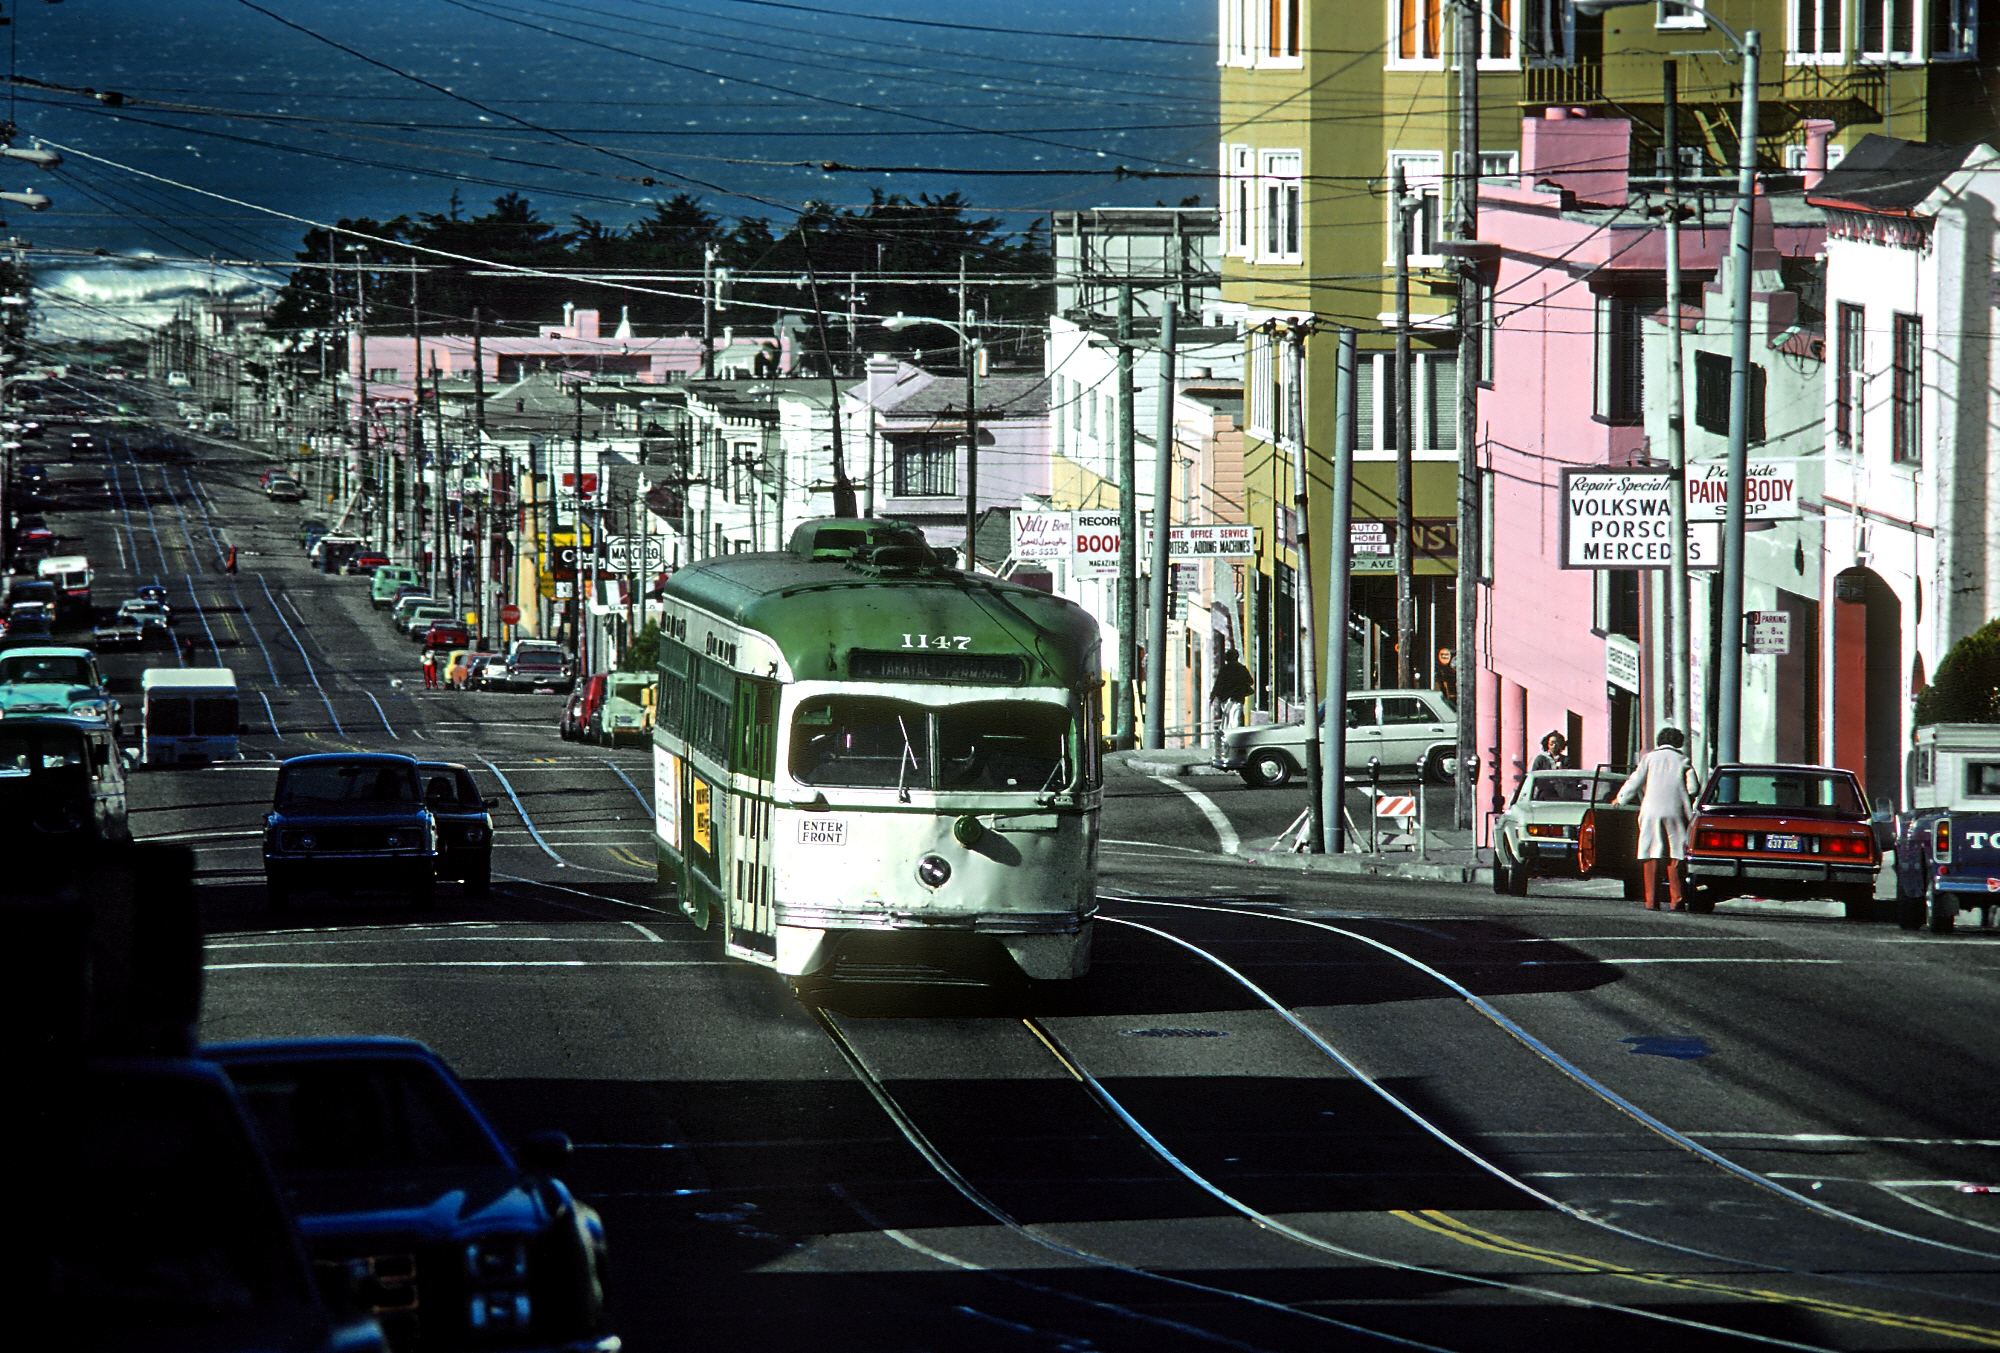 Taraval Street in 1980, with an old streetcar and waves breaking on Ocean Beach at the end of the lane.